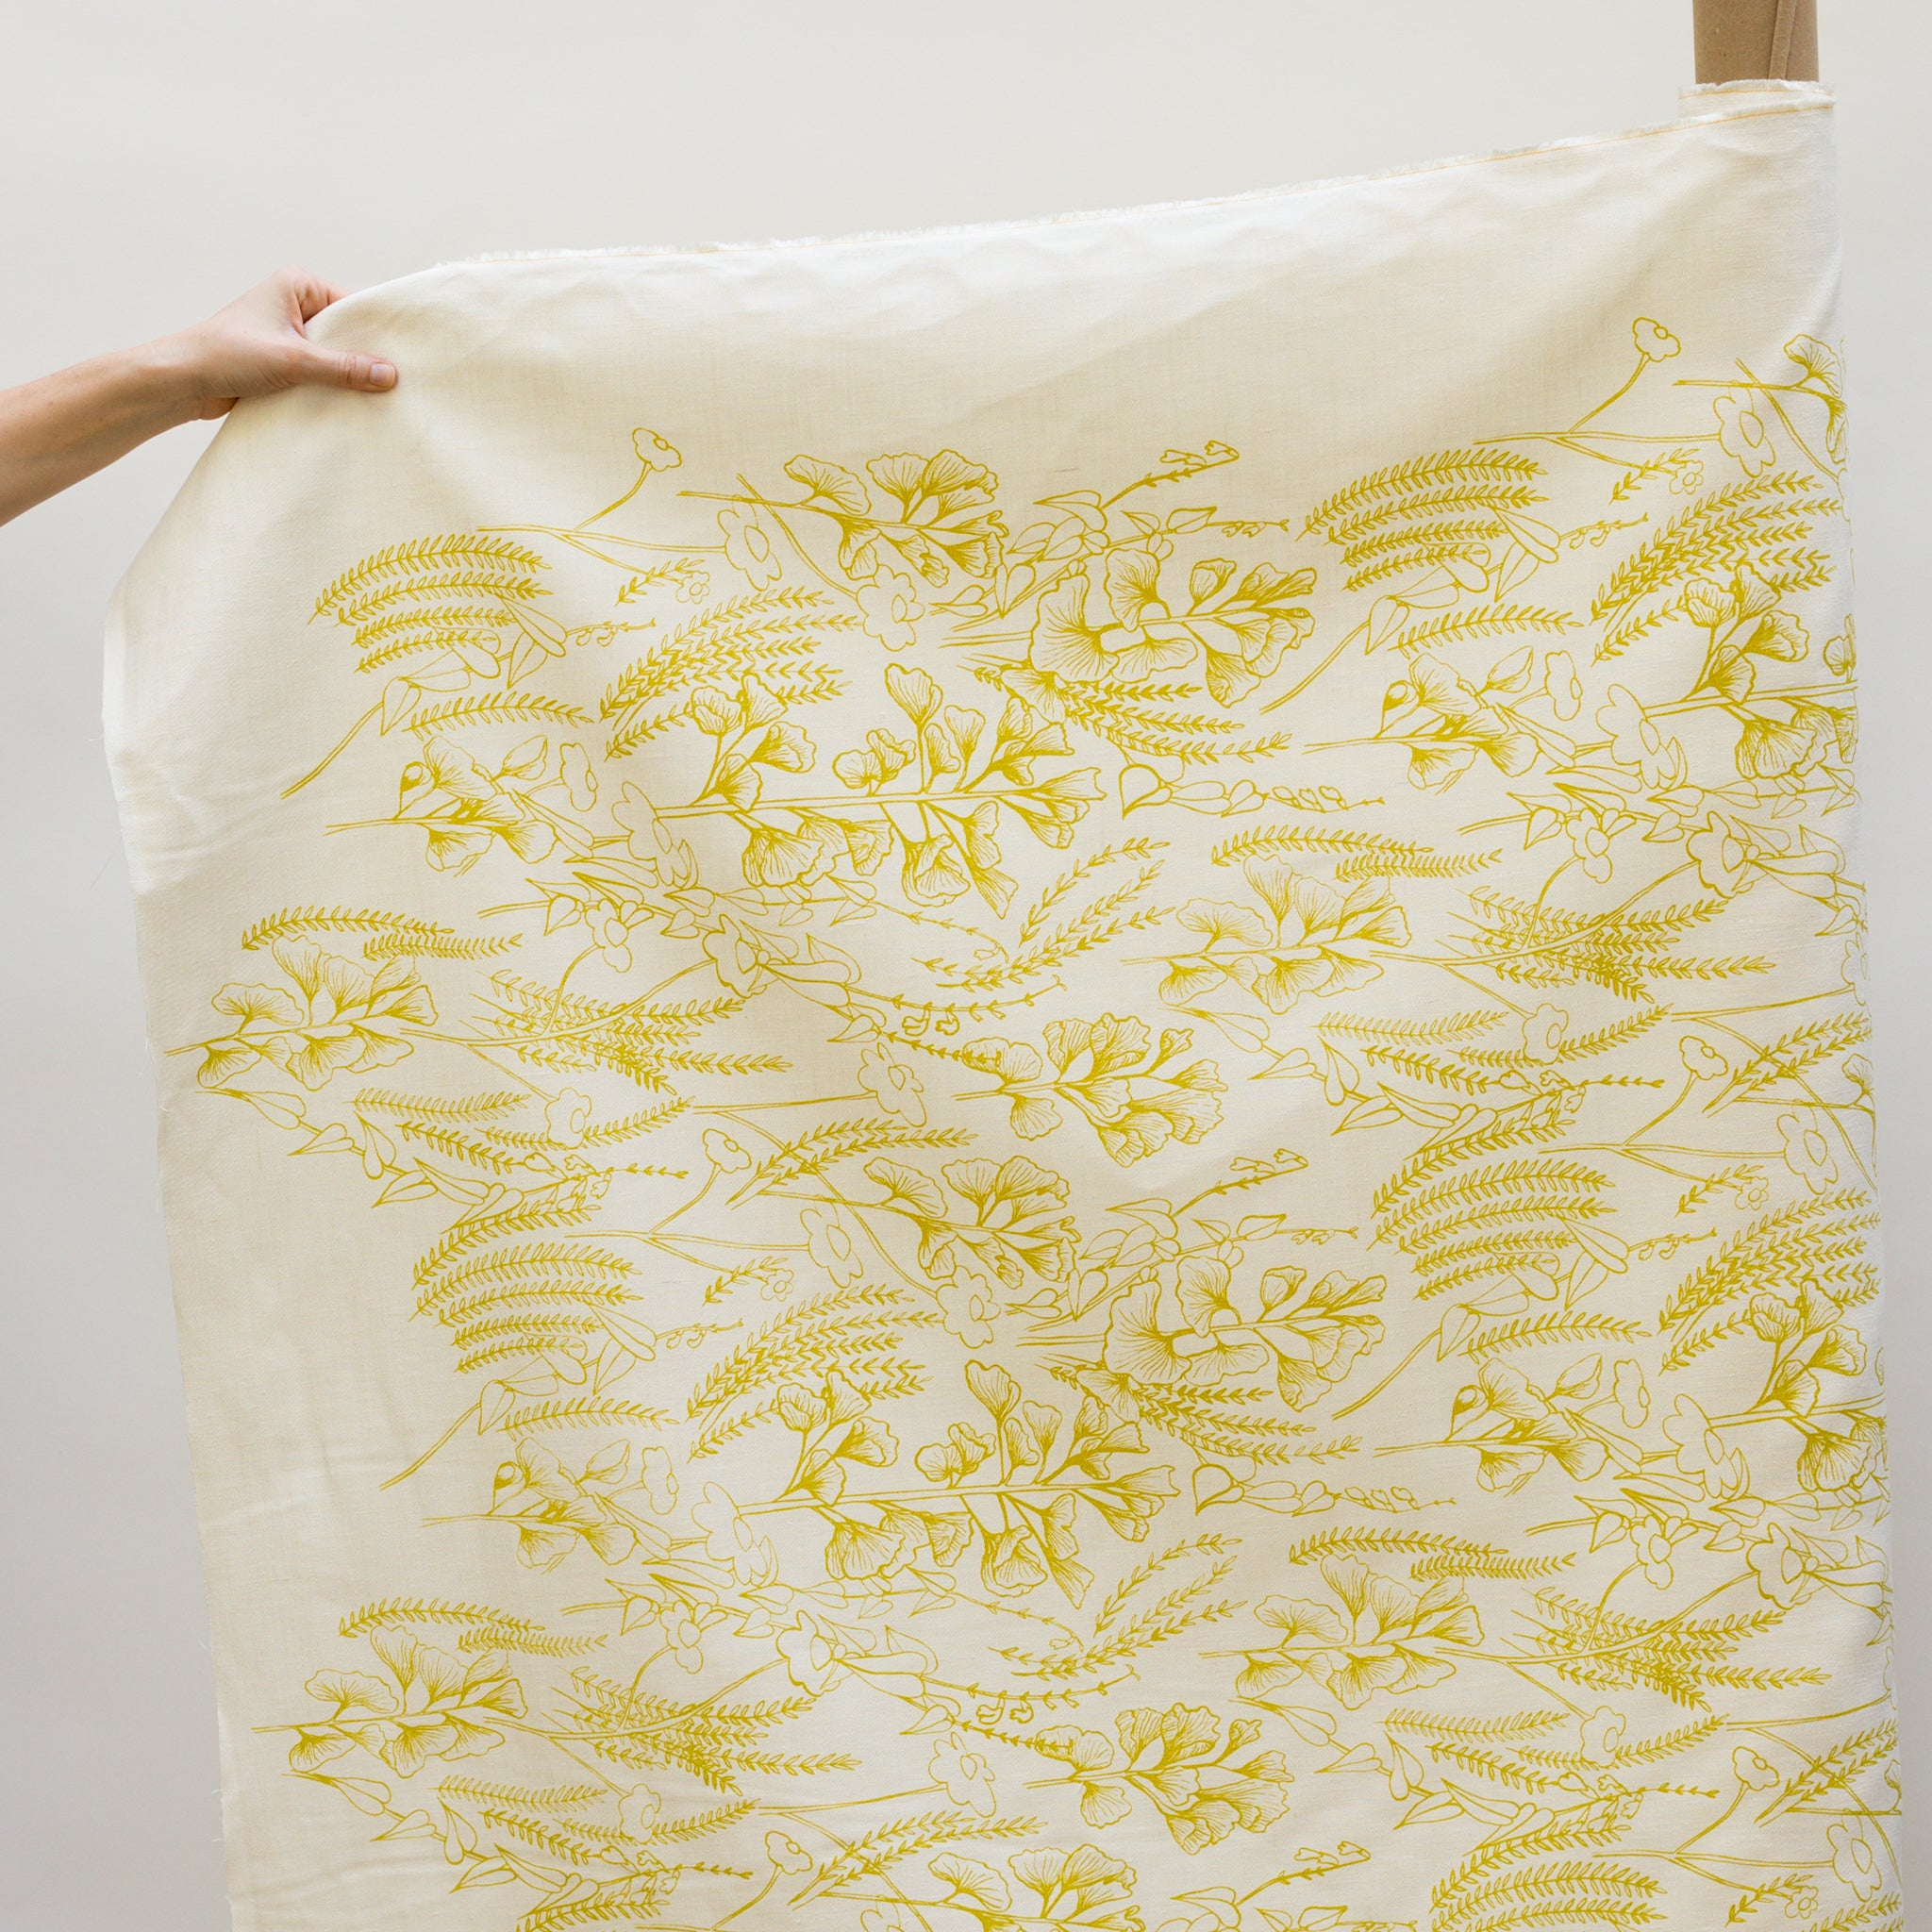 Screen printed fabric yardage of Ginkgo in Yarrow on the fabric roll with hand for scale